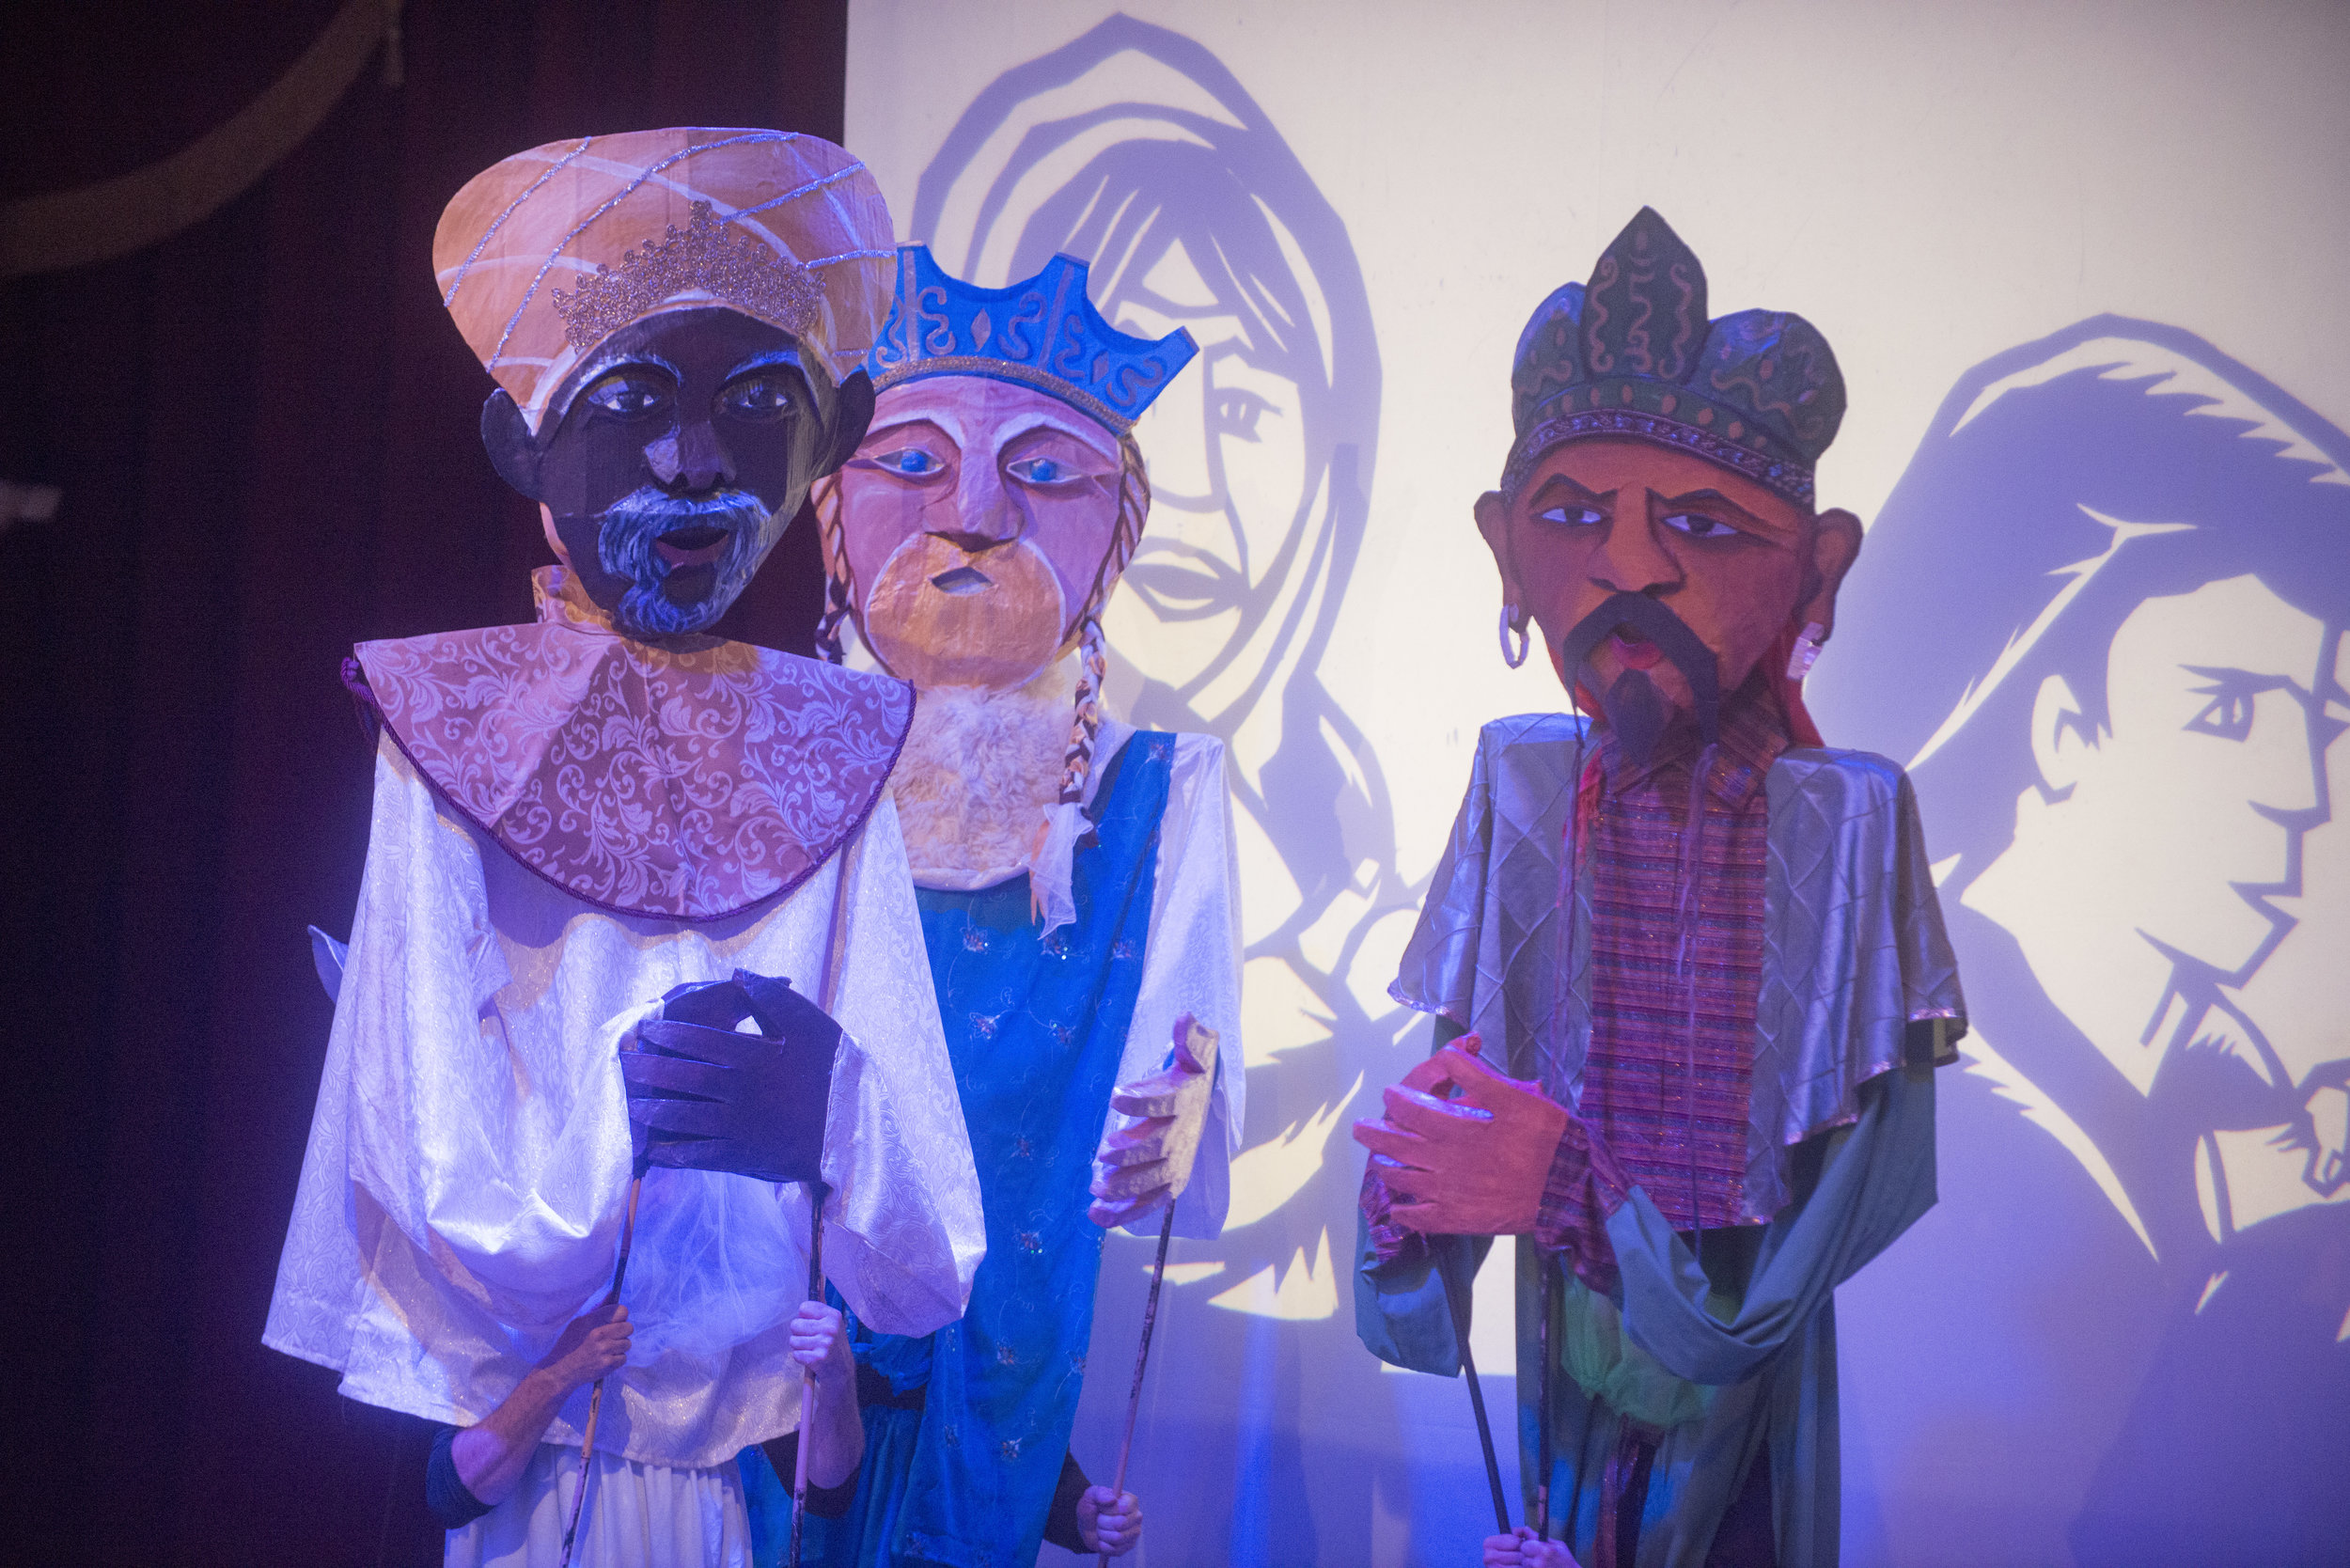 Help us bring these loom puppets back to the stage! - Donate.